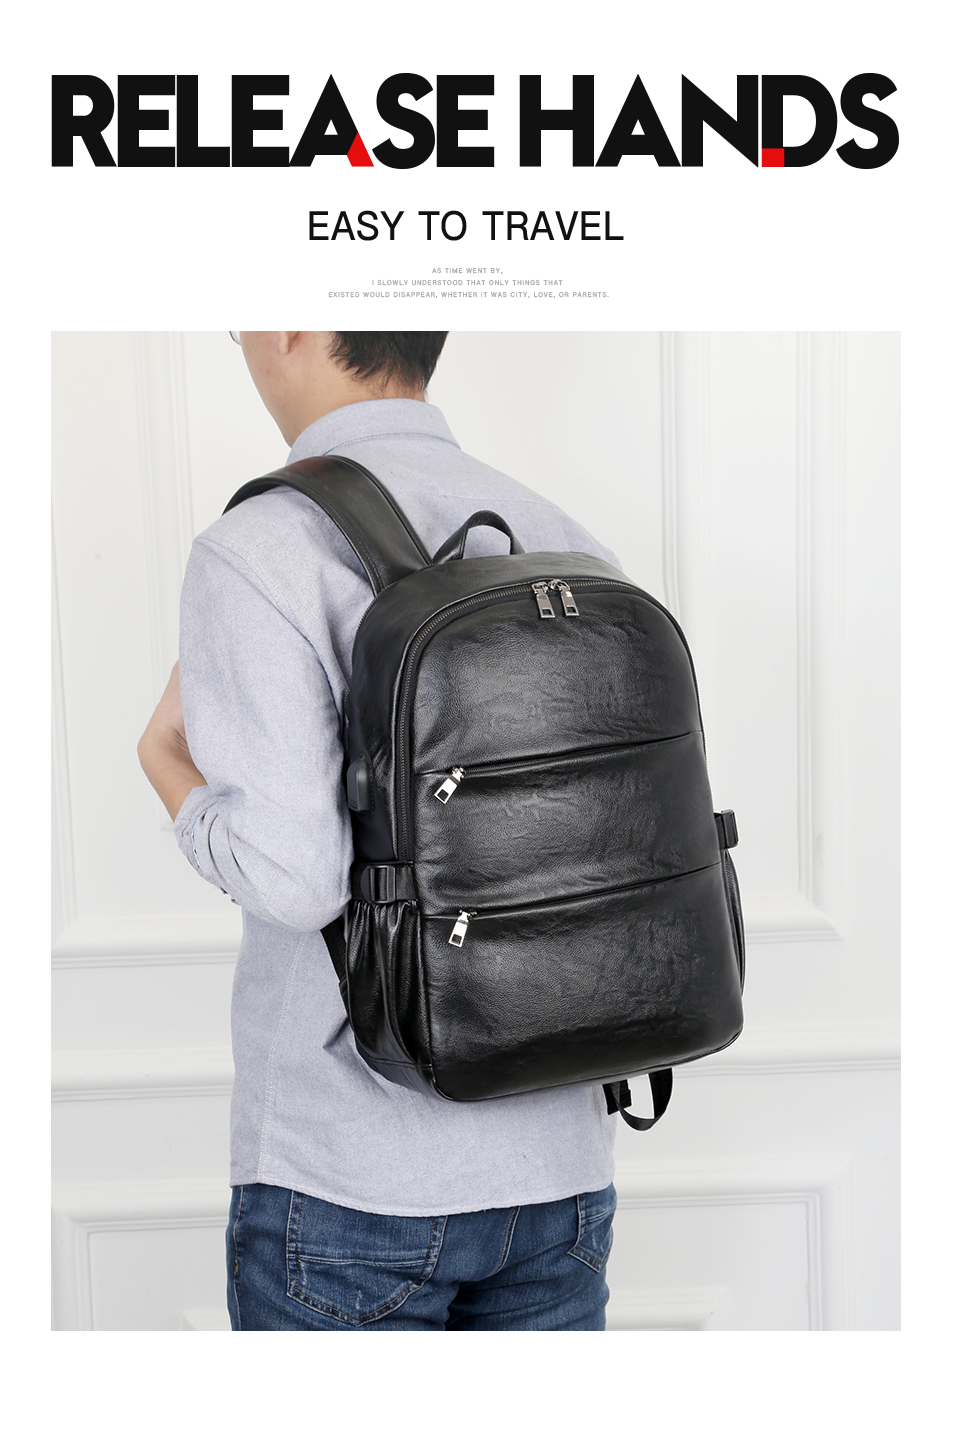 d5d1a9cc72be The commonly seen backpacking backpacks is very popular nowadays among  young people! The fashionable design of personalized backpacks makes them  so charming ...